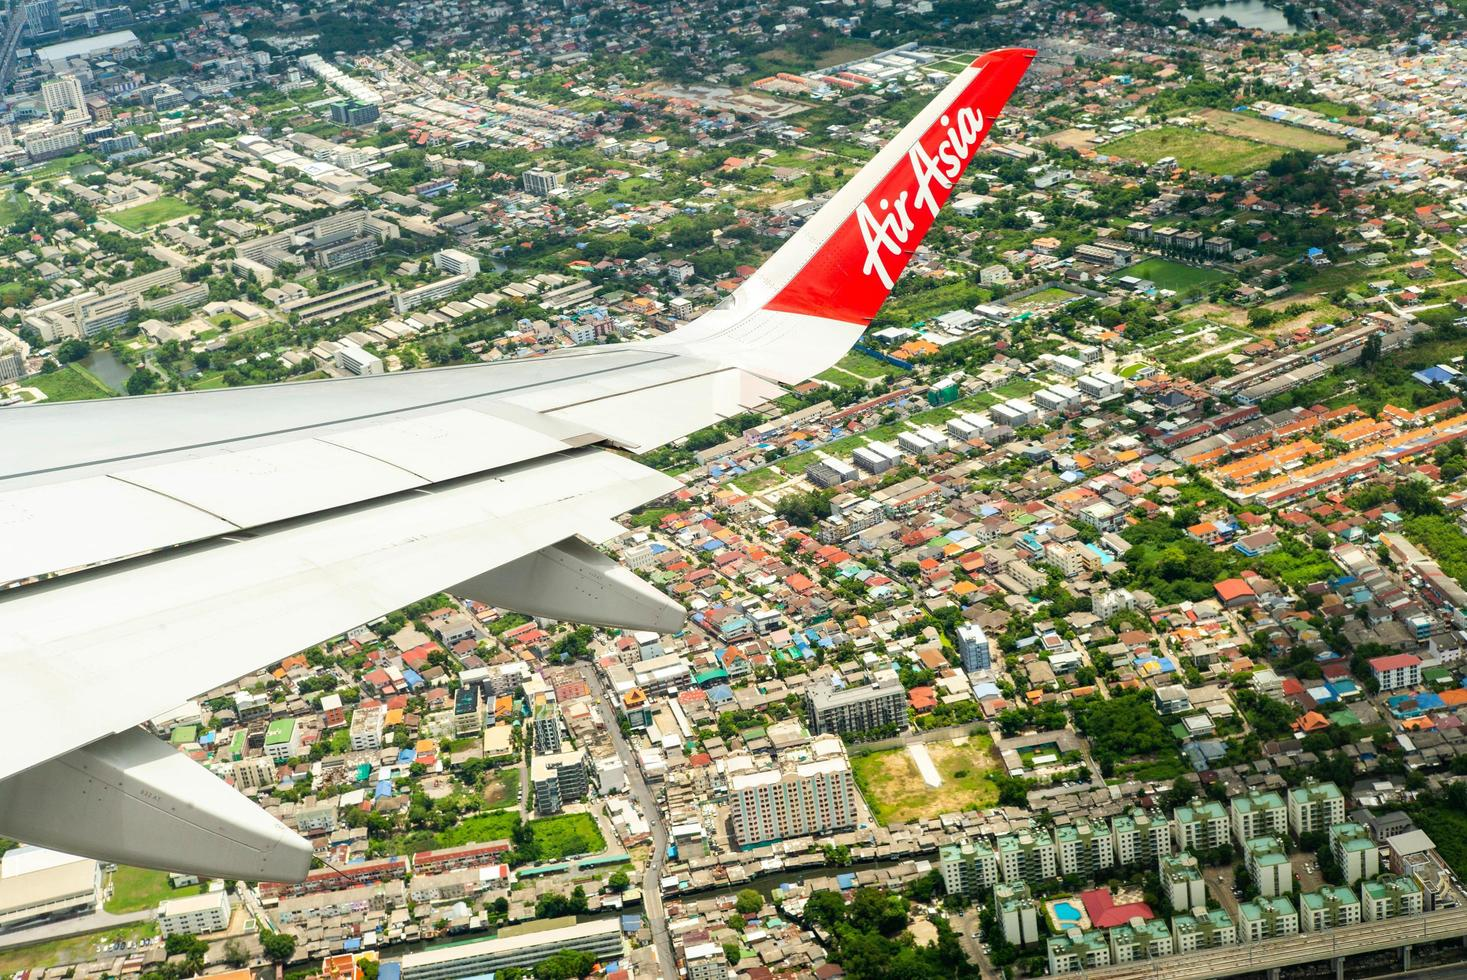 Bangkok, Thailand  - June 8, 2020 - Closeup wing of an Air Asia airplane while flying in the air with cityscape below photo